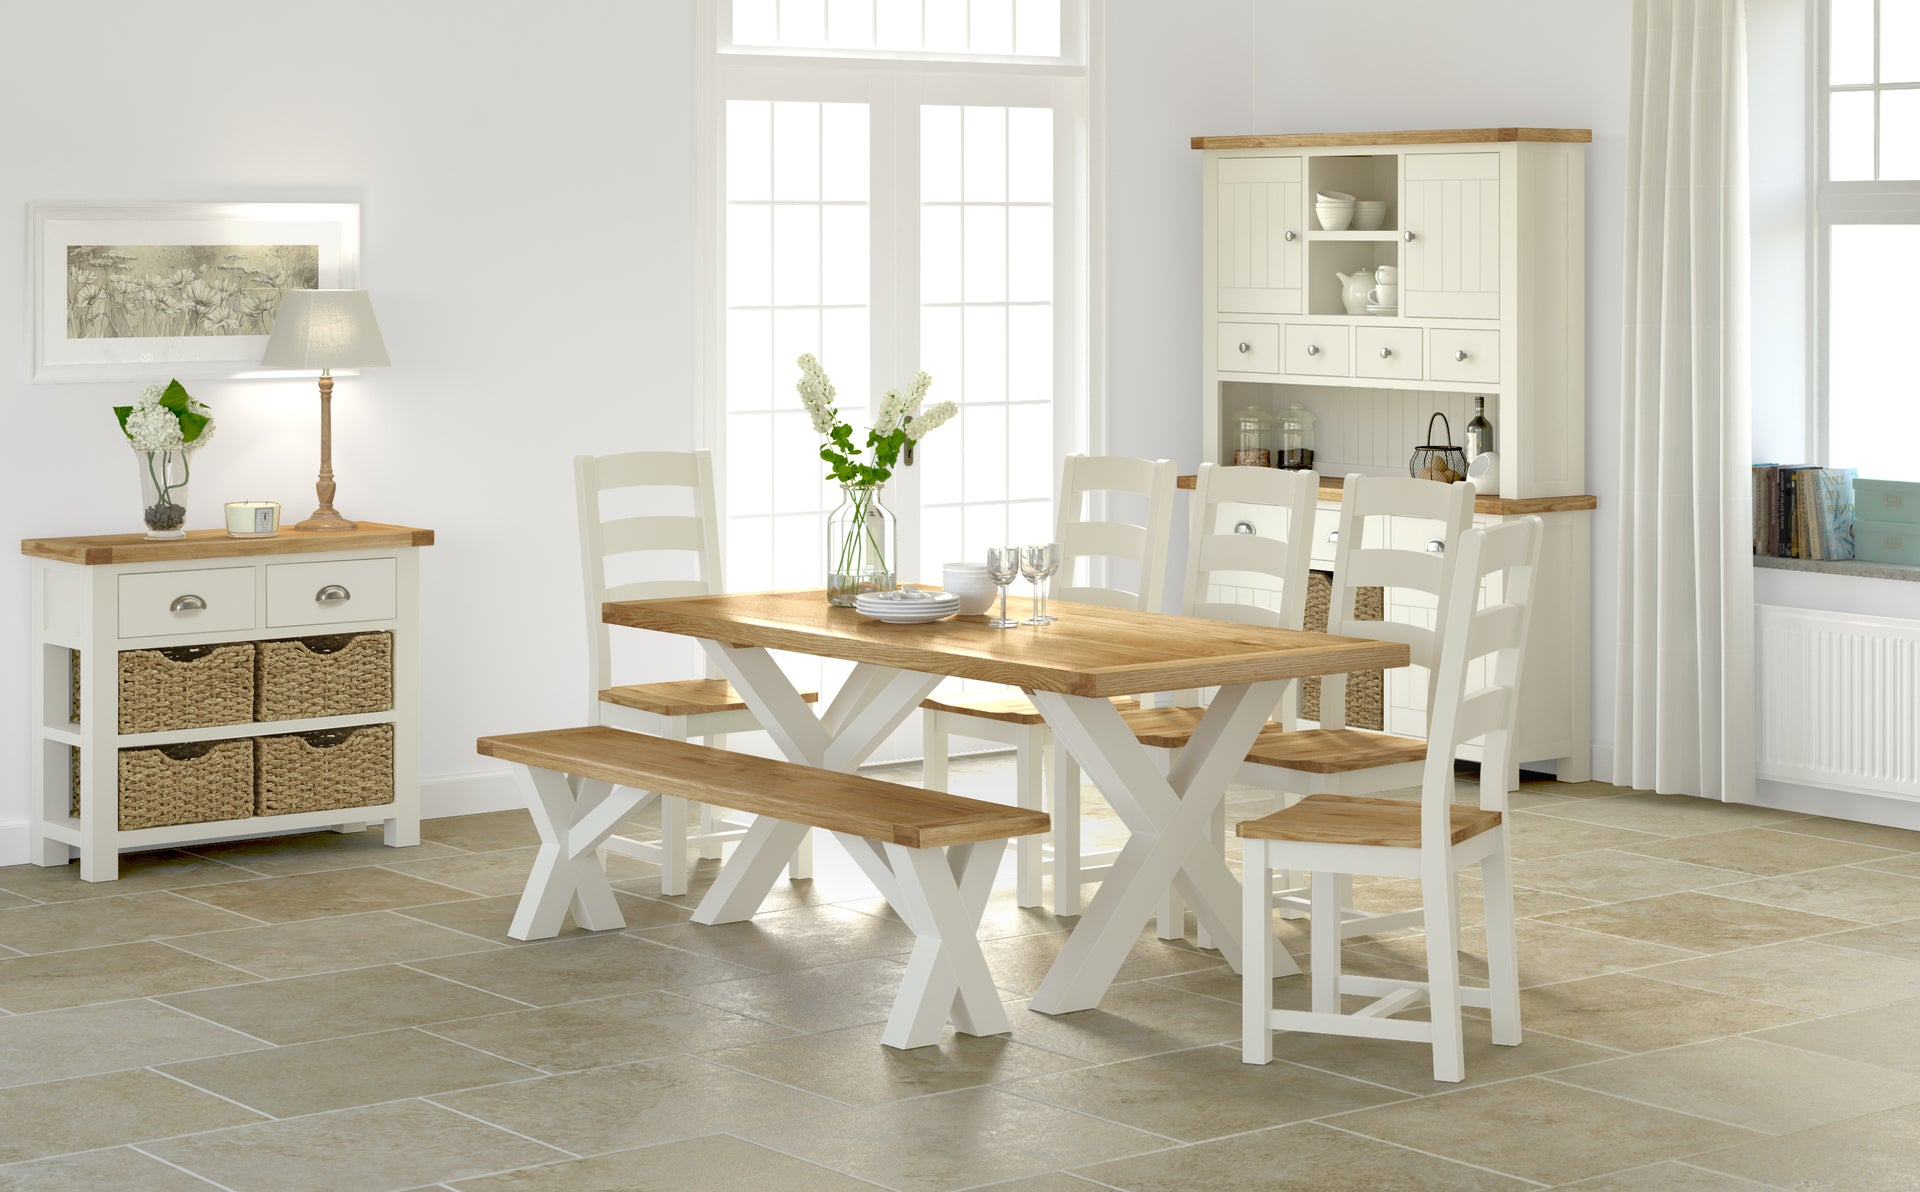 Santana Cream Dining Chair